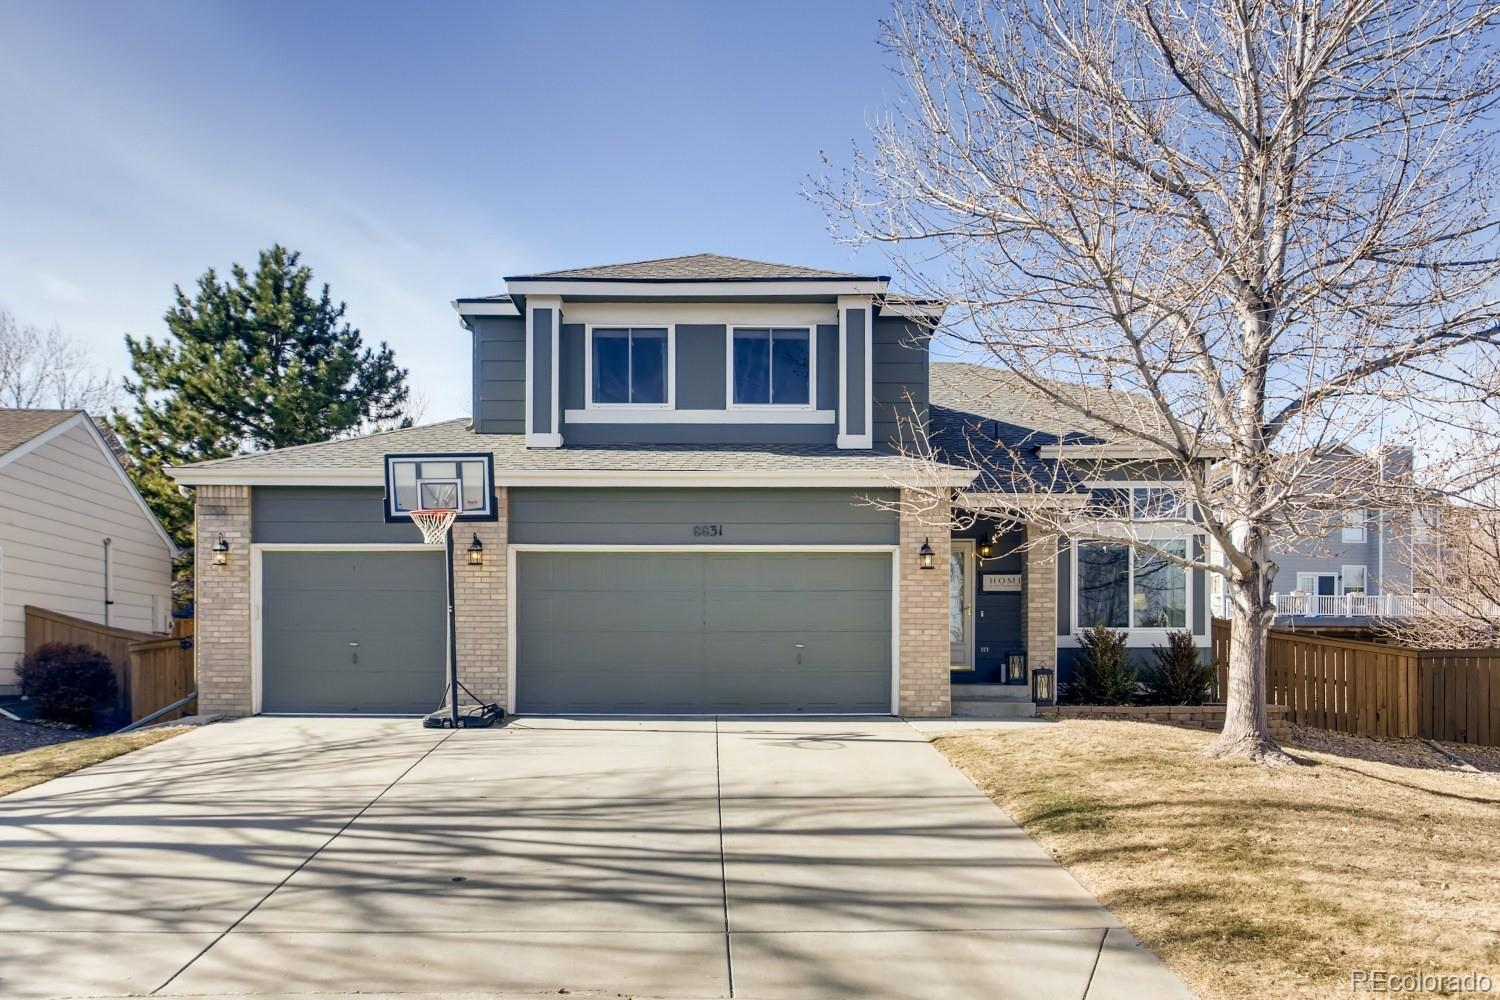 MLS# 4609575 - 1 - 8831 Miners Street, Highlands Ranch, CO 80126